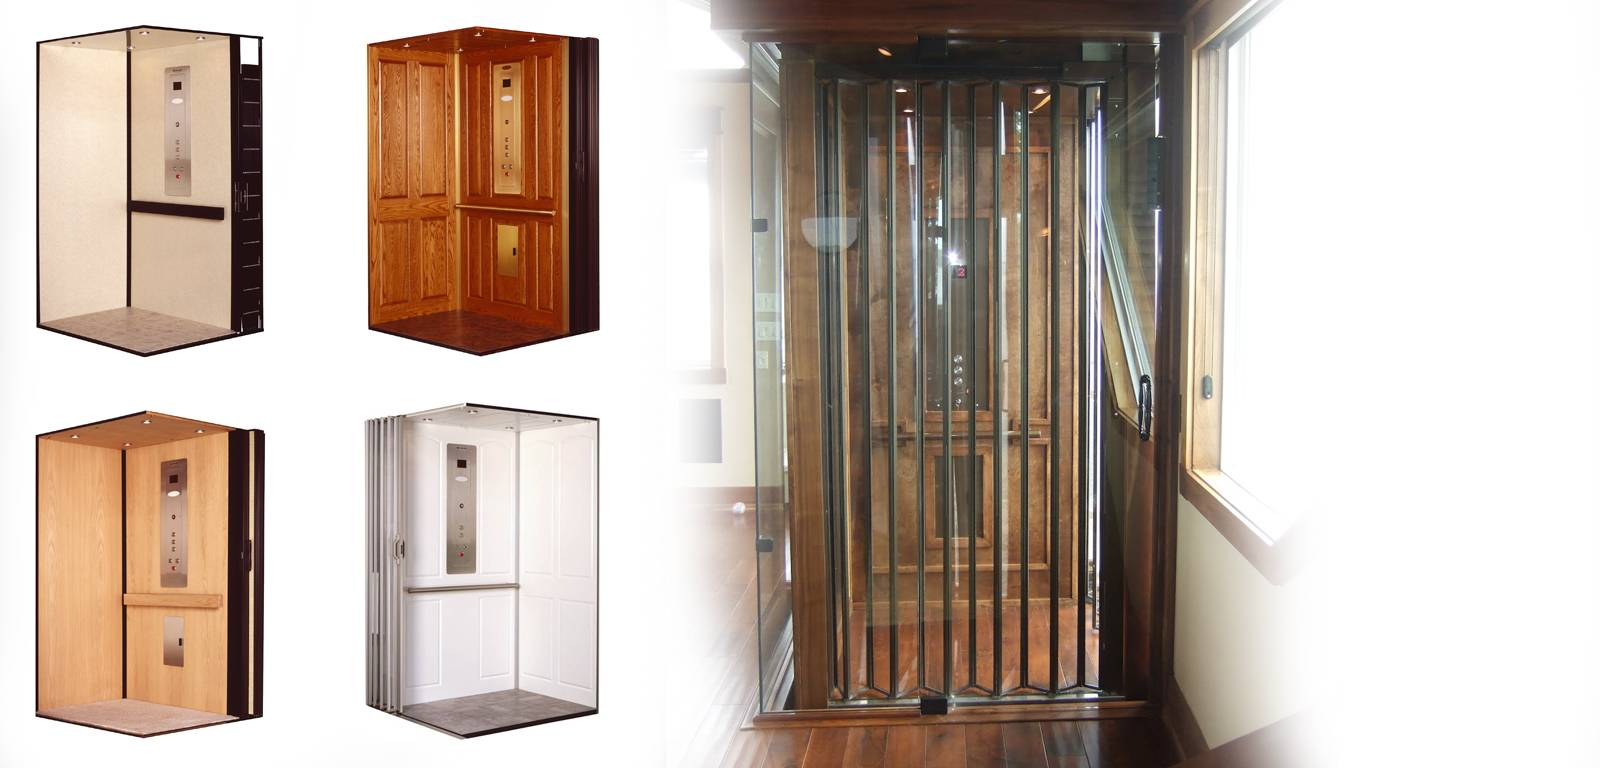 Diy home elevator kits